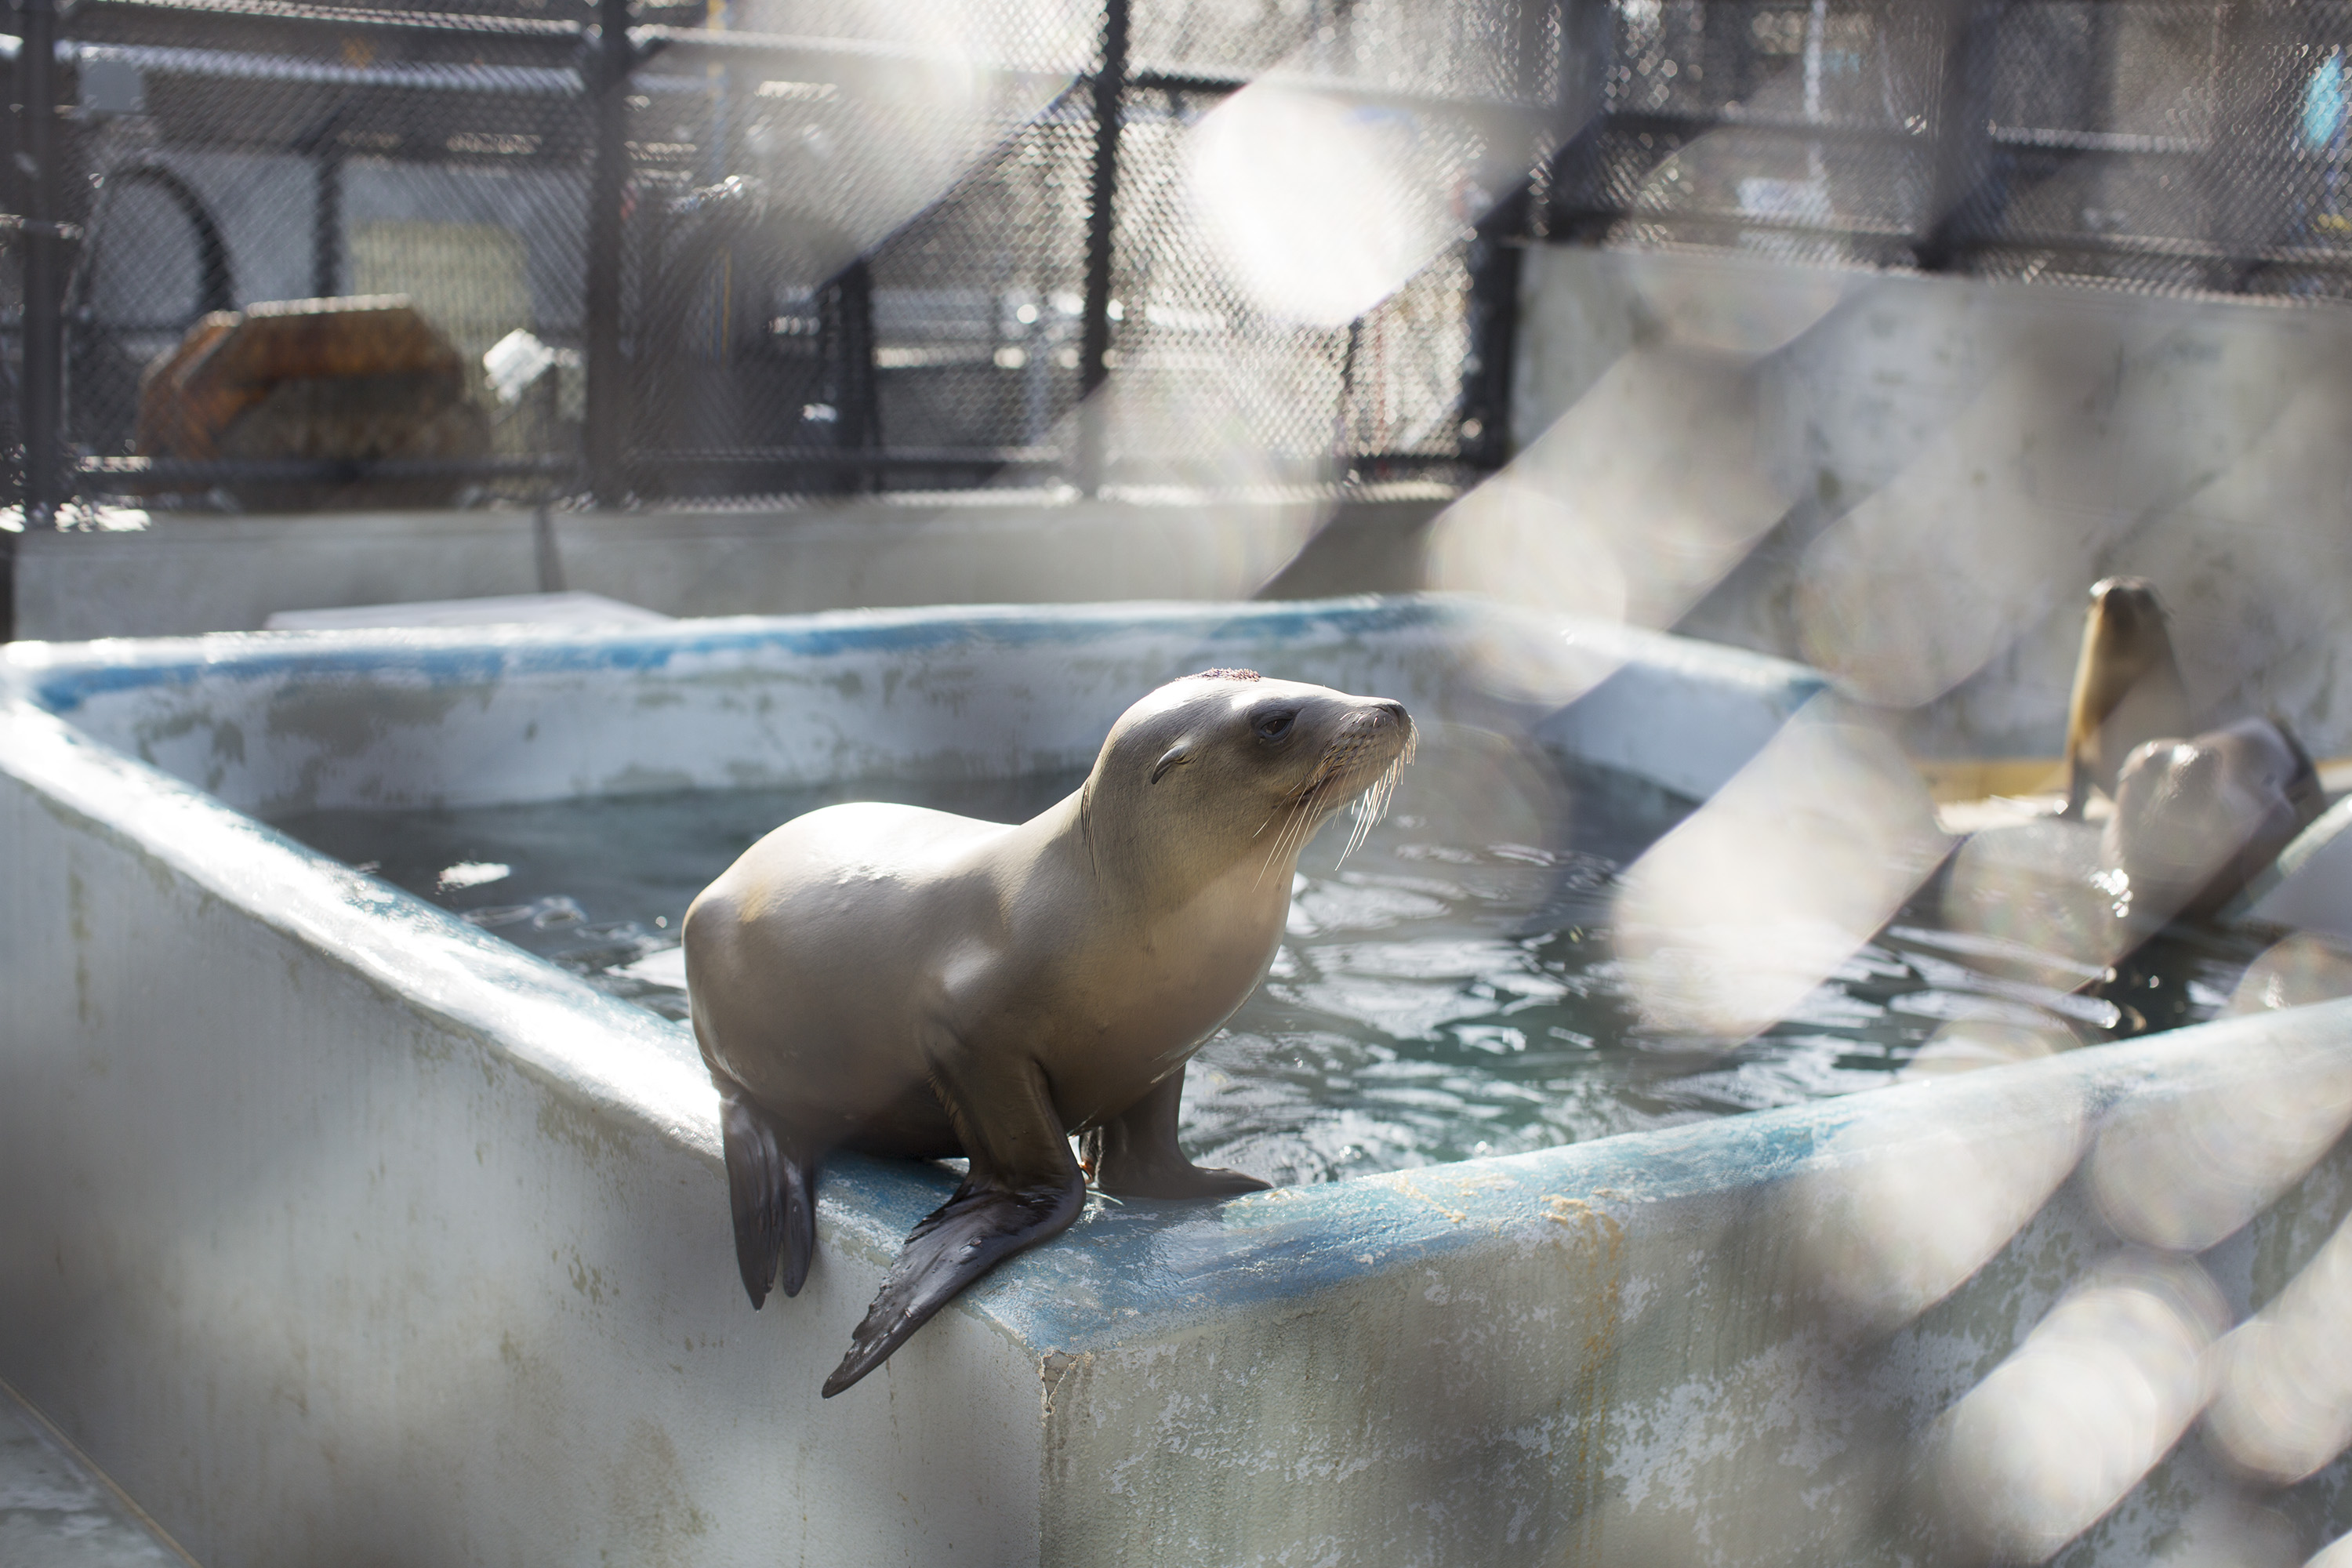 A California sea lion sits on the edge of a pool at the Marine Mammal Center in Marin County, Calif. on May 9, 2014.